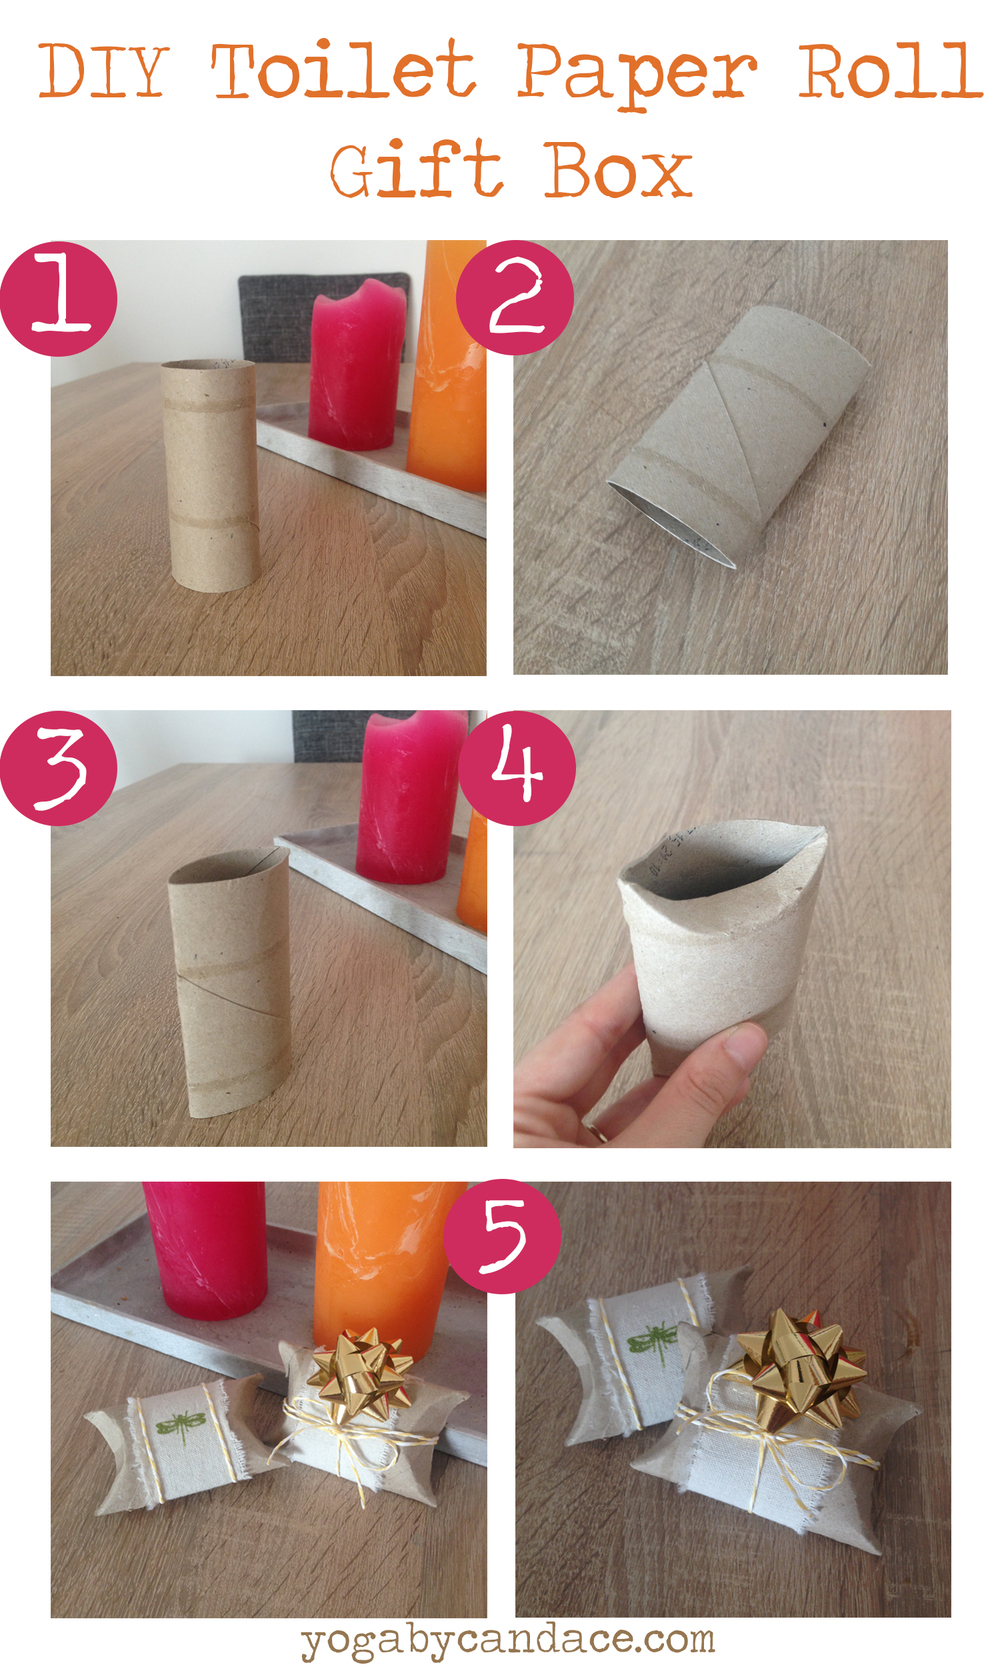 Pin now, practice later: DIY Toilet Paper Roll Gift Box